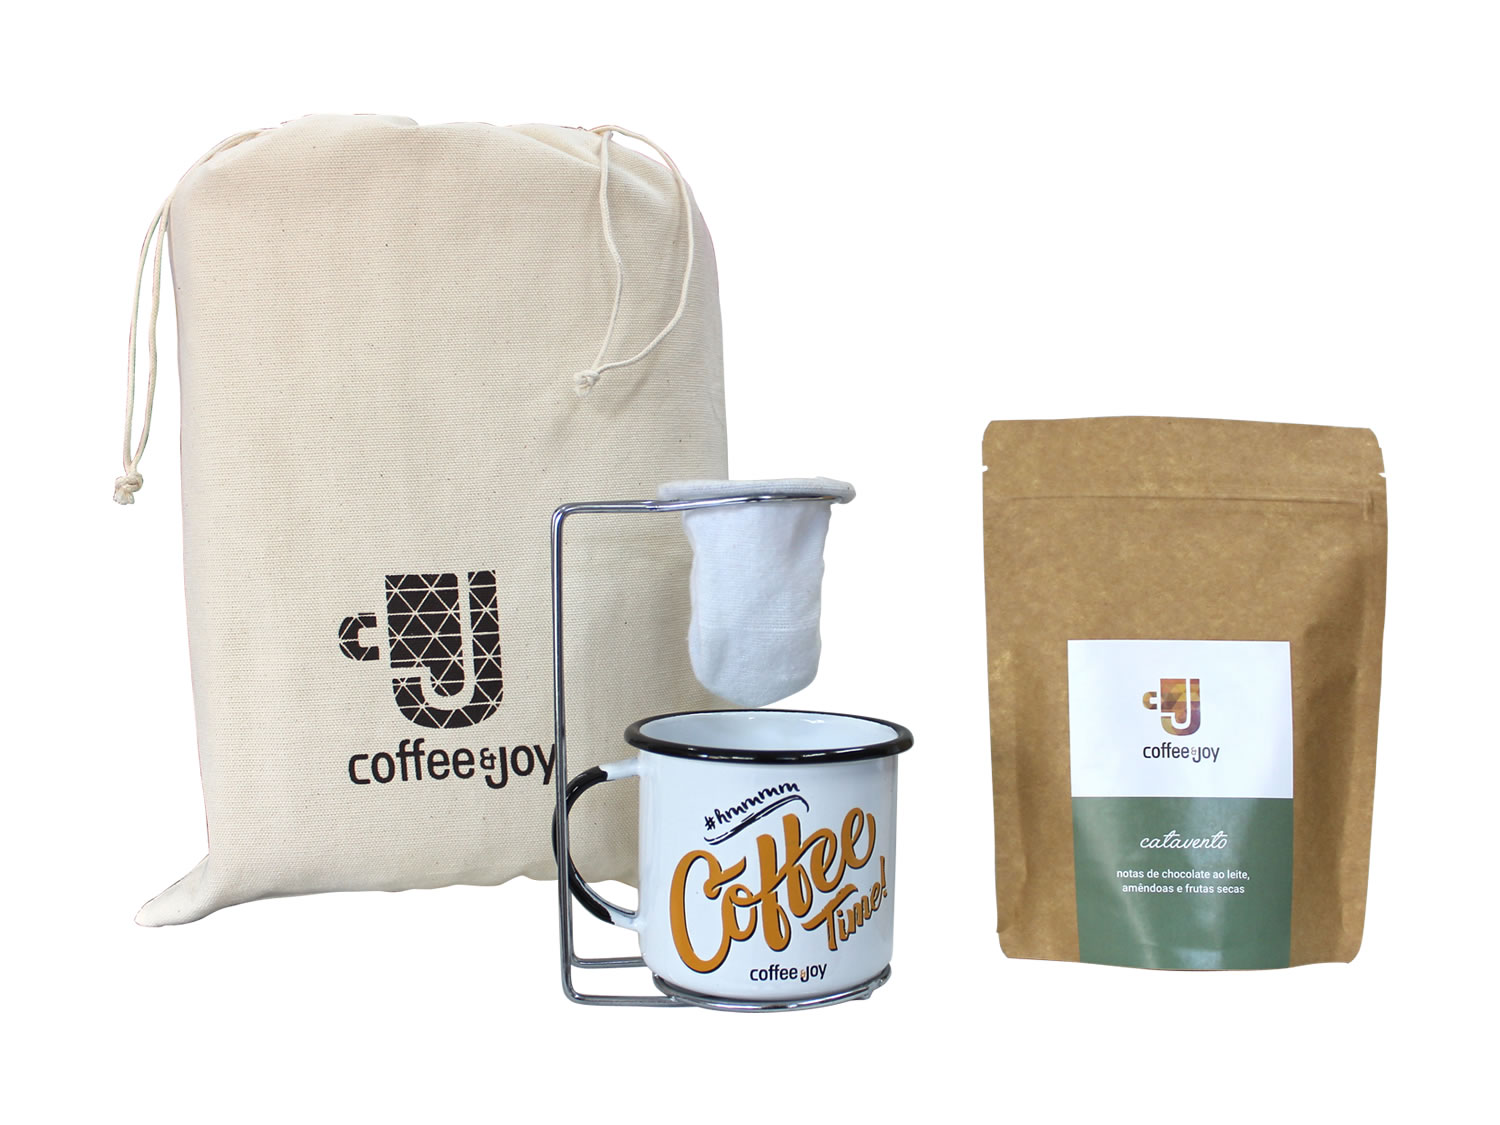 Coffeeandjoy kit cafe coador depano caneca agata